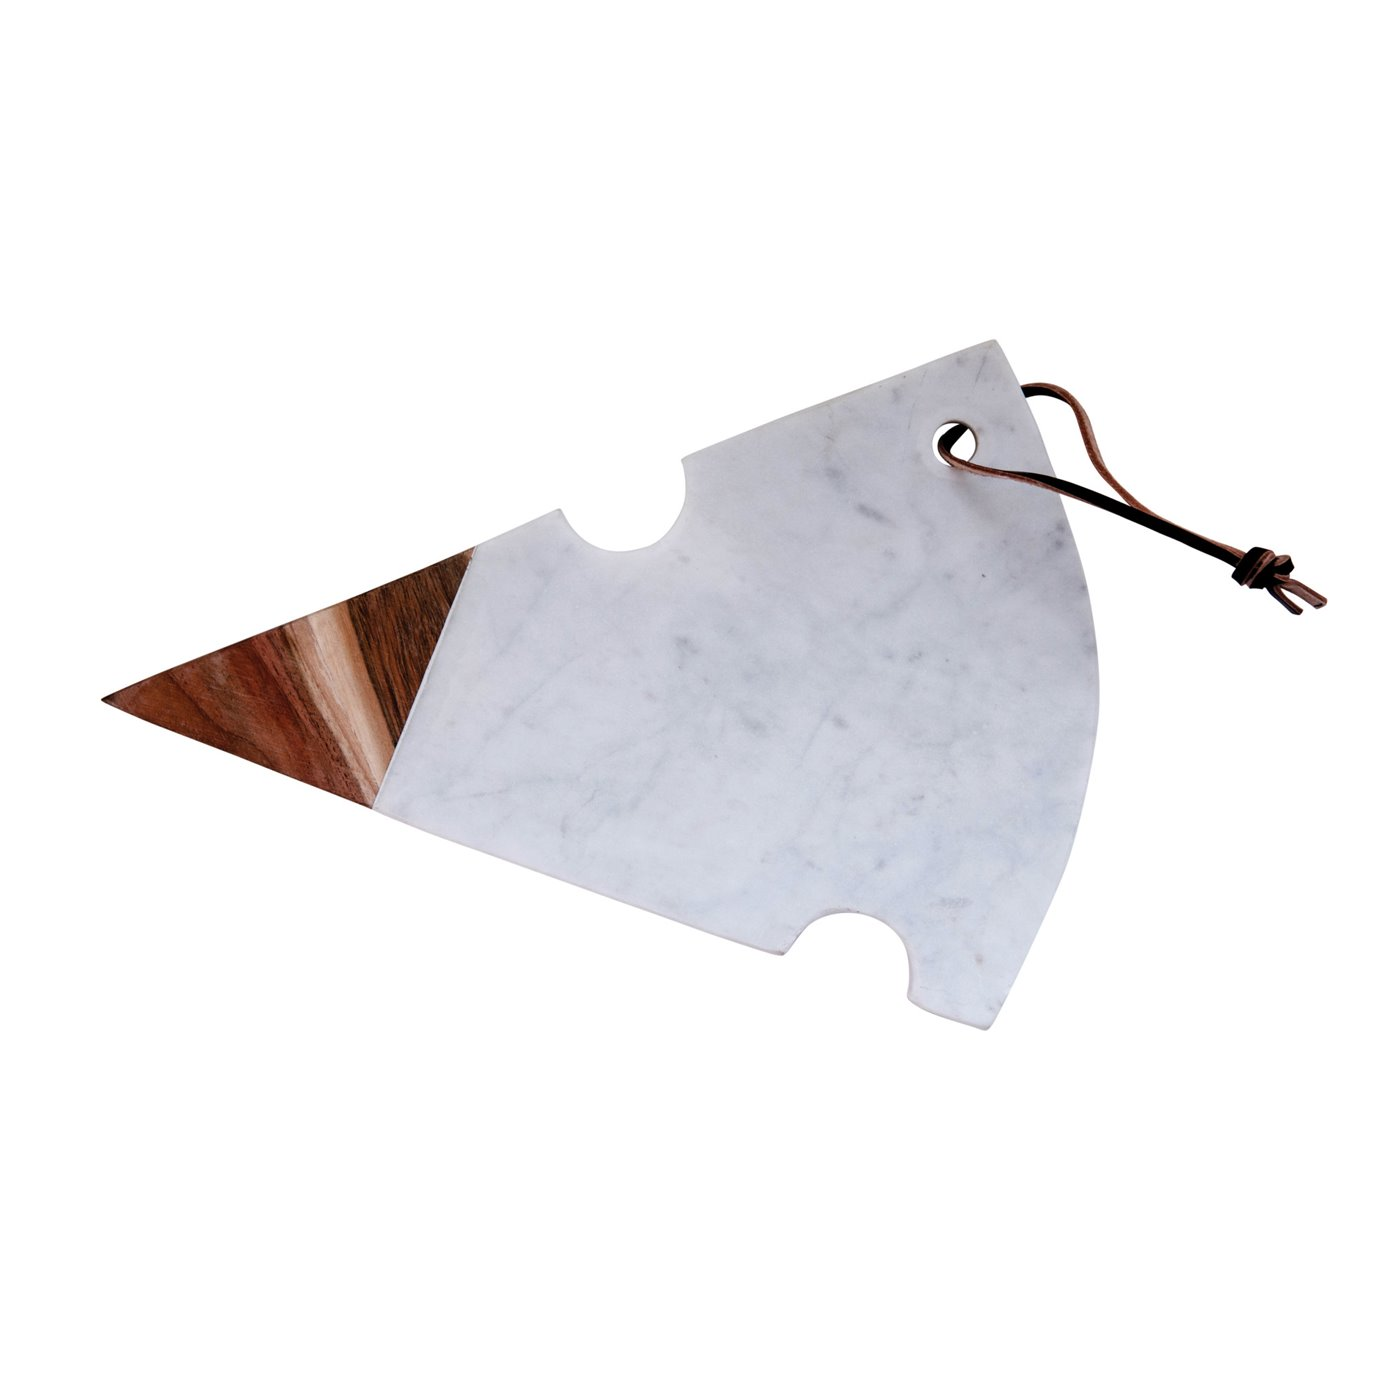 Cheese Shaped Cutting Board in White Marble & Acacia Wood